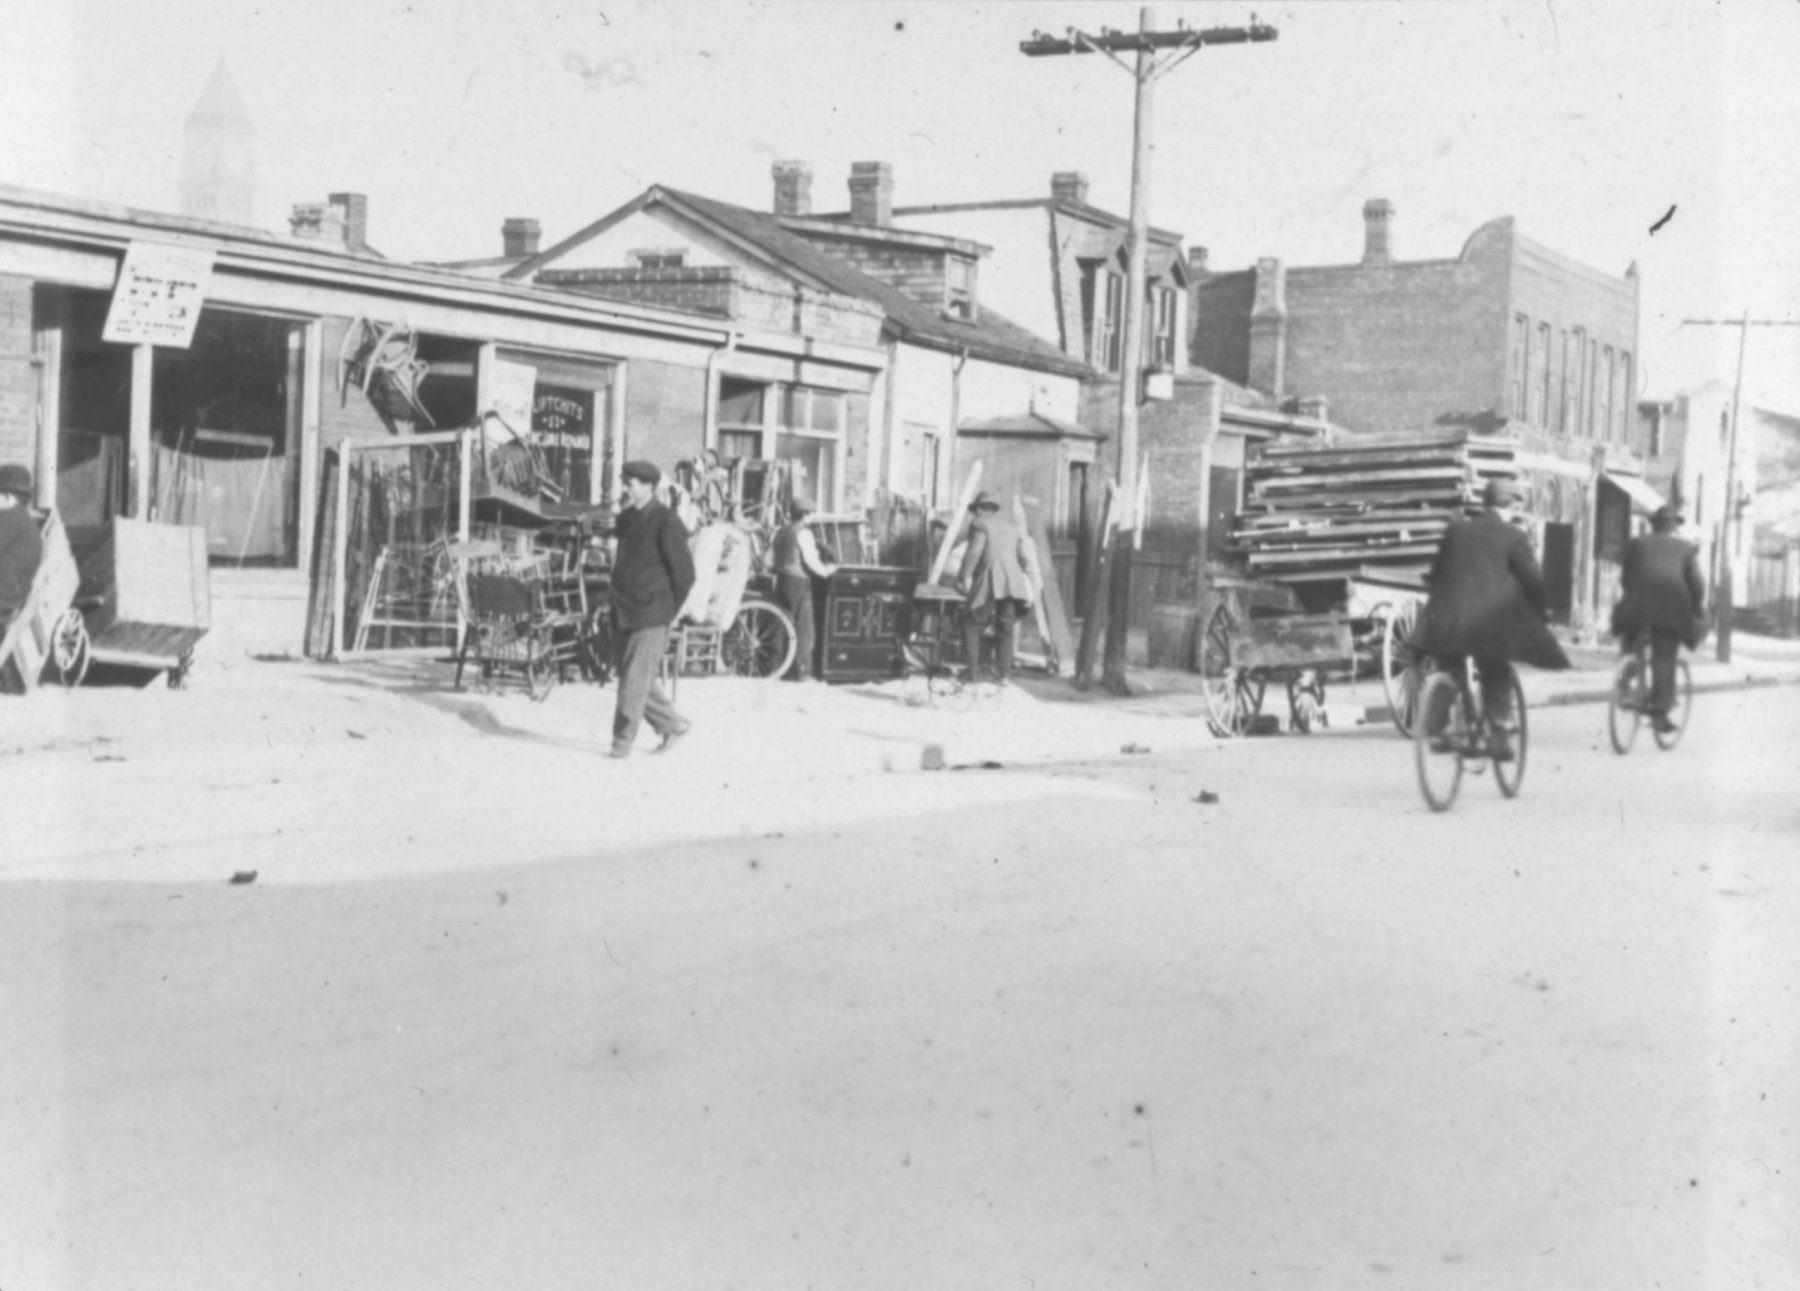 Street view of Terauley Street (now Bay Street), the Ward, ca. 1910. The main subject of the photo is the secondhand shop Liptchts (Lipchitz's). Also visible to the left of the shop is a Yiddish language sign and the Old City Hall clock tower can faintly be seen in the background.  OJA, fonds 43, item 1.